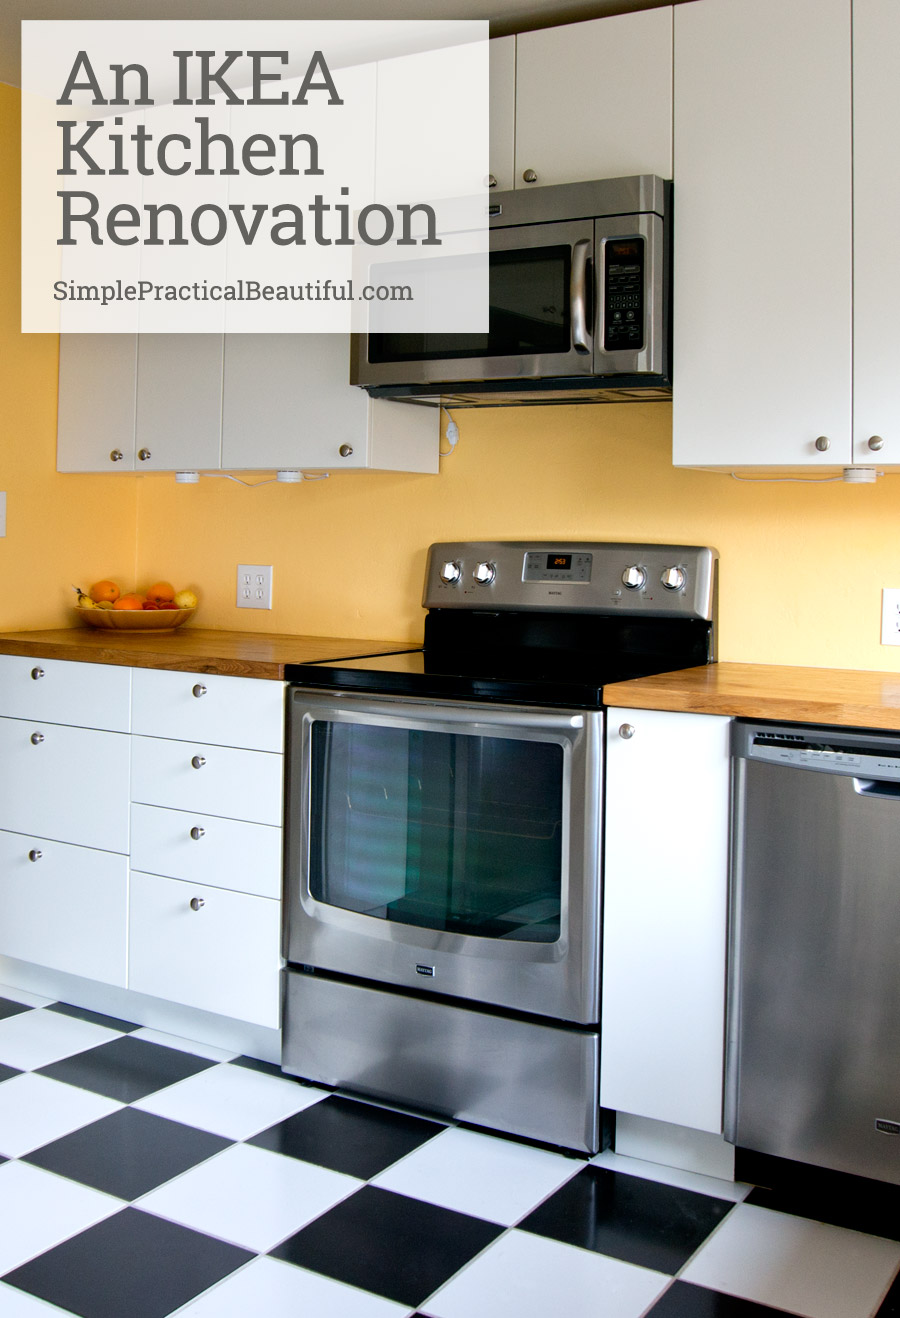 charming ikea kitchen remodel ikea kitchen remodel A great DIY IKEA kitchen remodel with a few custom parts Lots of tips on